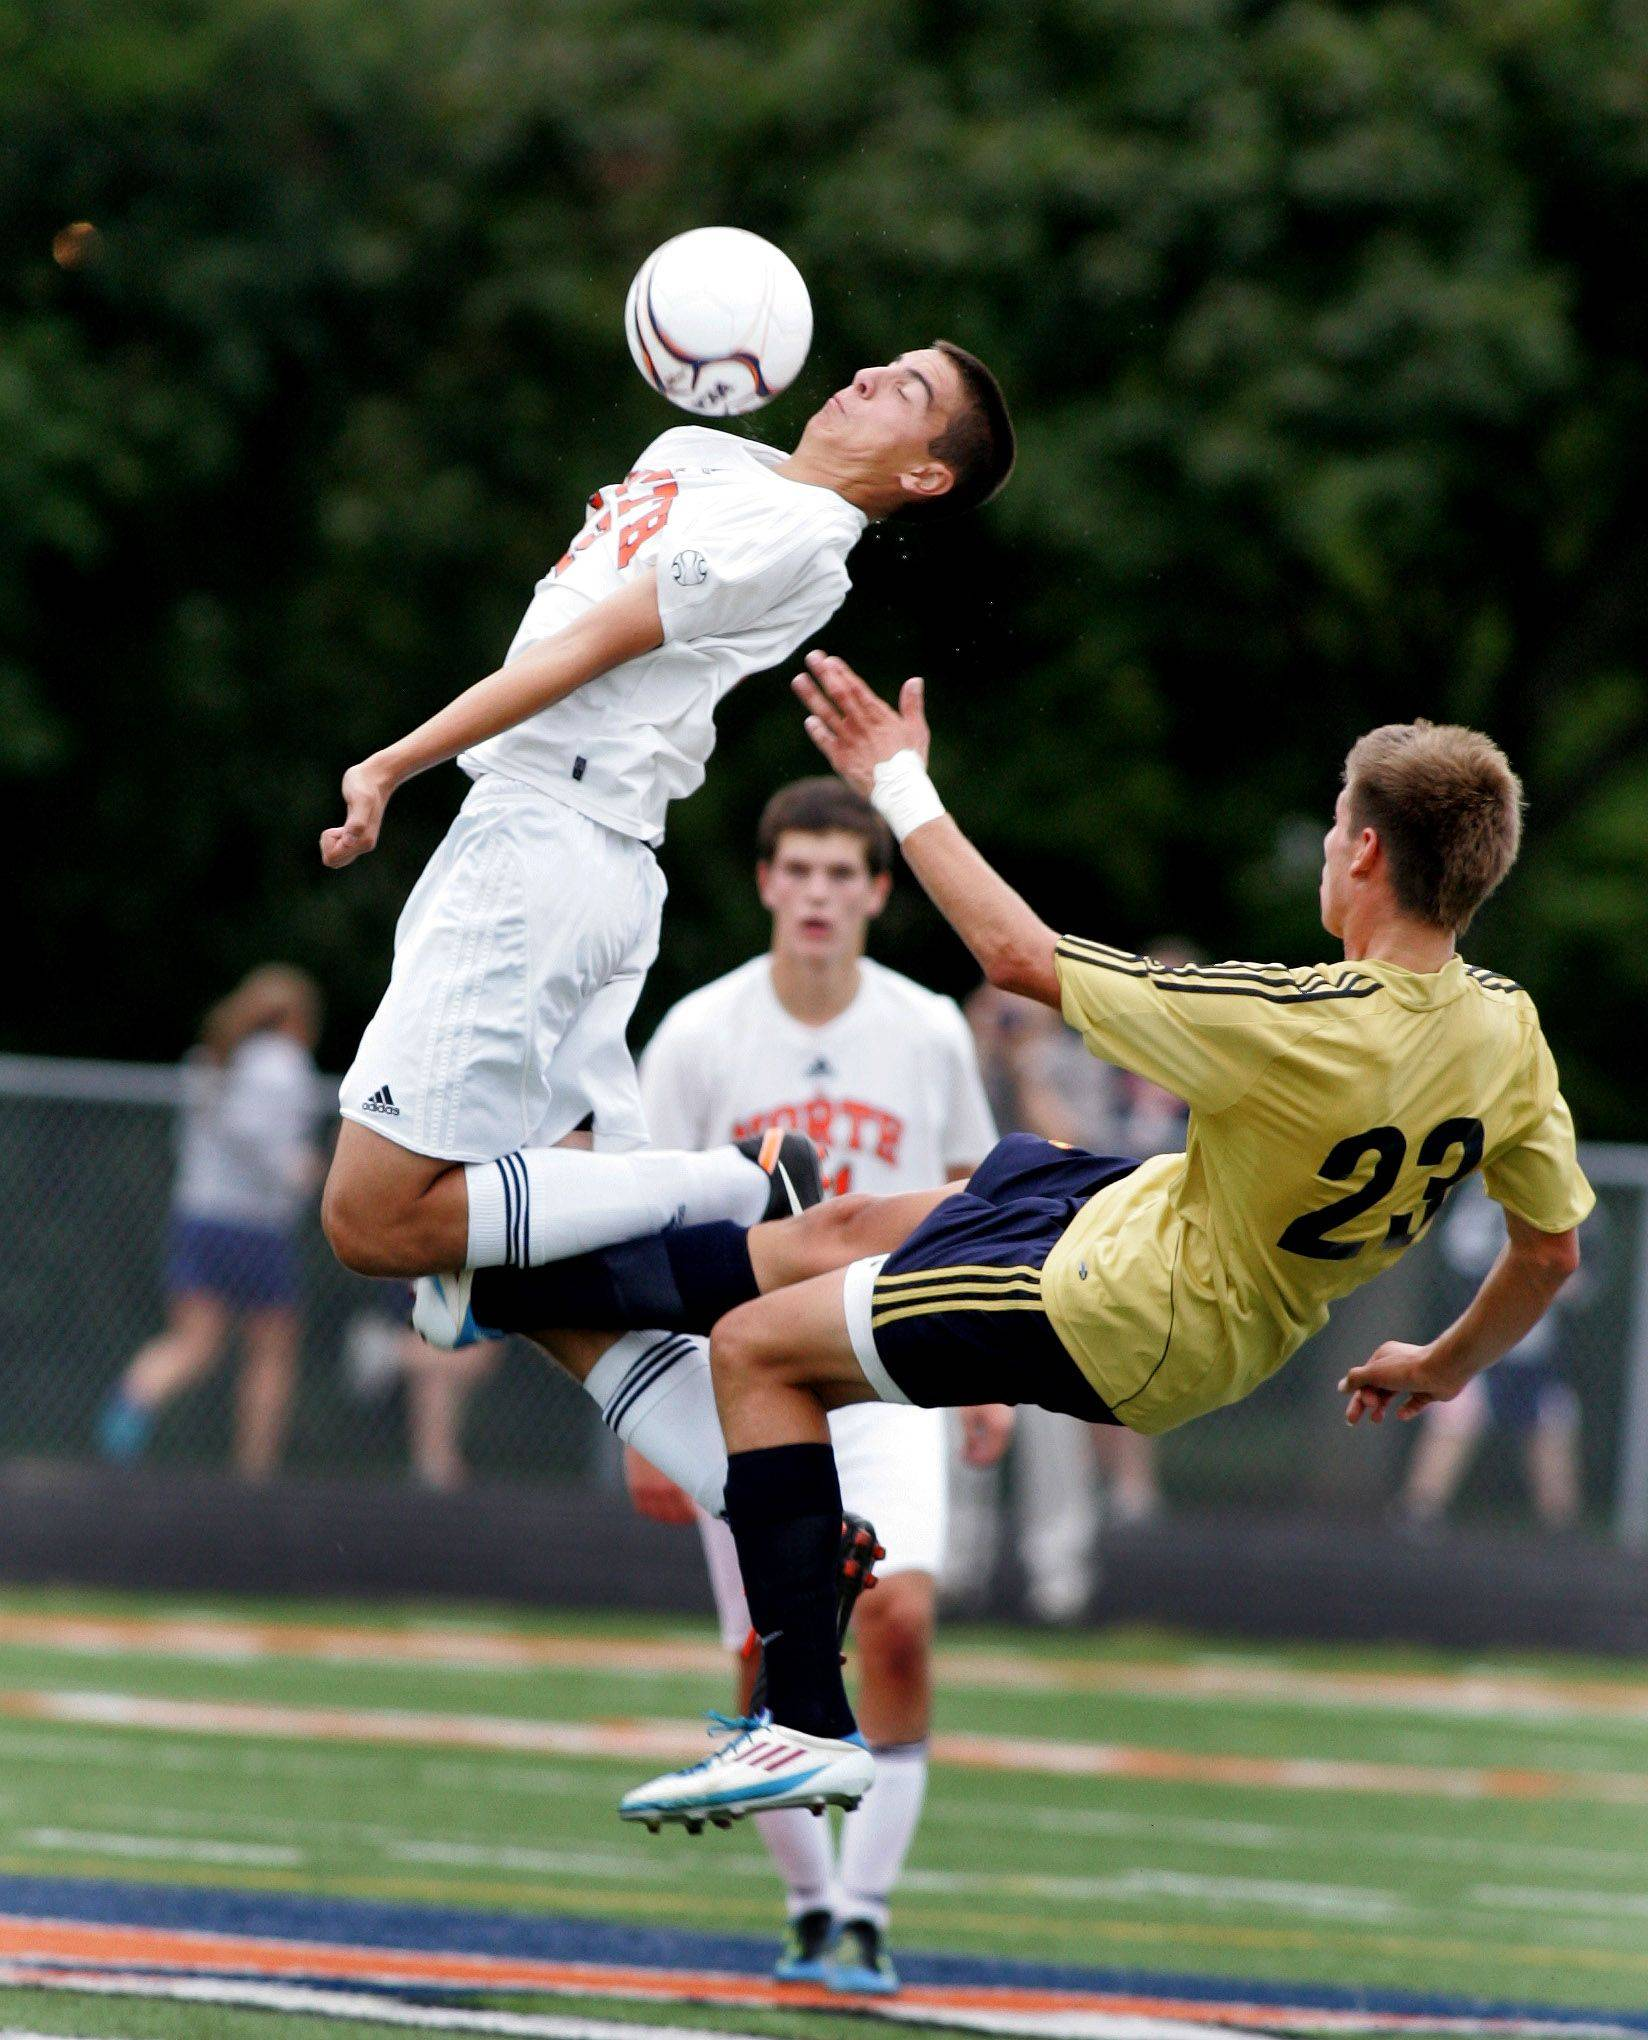 Neil Wiaranowski, left, of Naperville North and Jake Loncar, right, of Neuqua Valley get tripped up in boys soccer action Tuesday in Naperville.